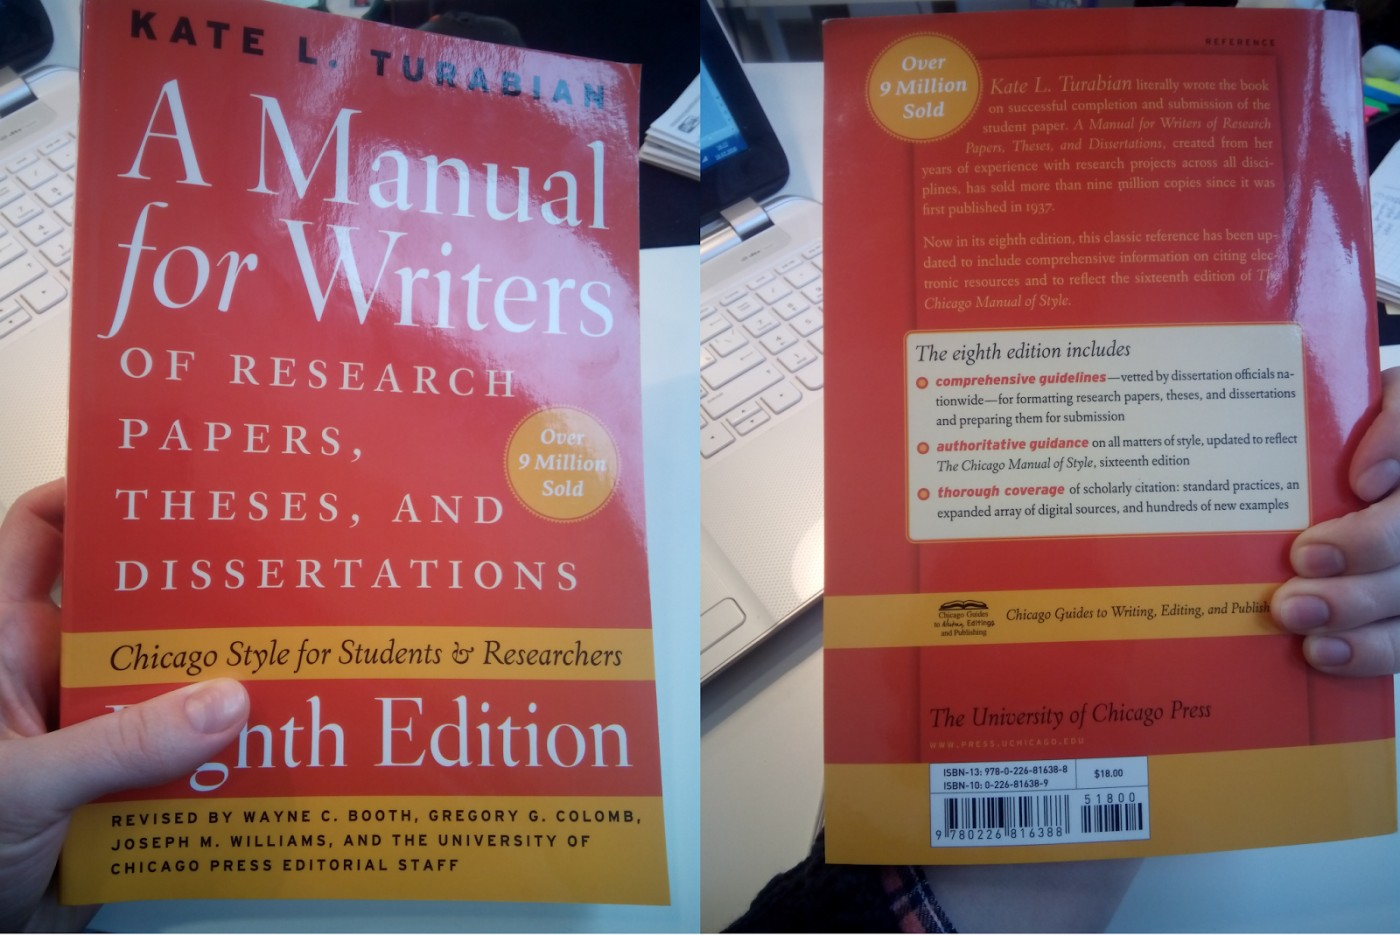 019 Manual For Writers Of Research Papers Theses And Dissertations Paper Magnificent A Amazon 9th Edition Pdf 8th 13 1400